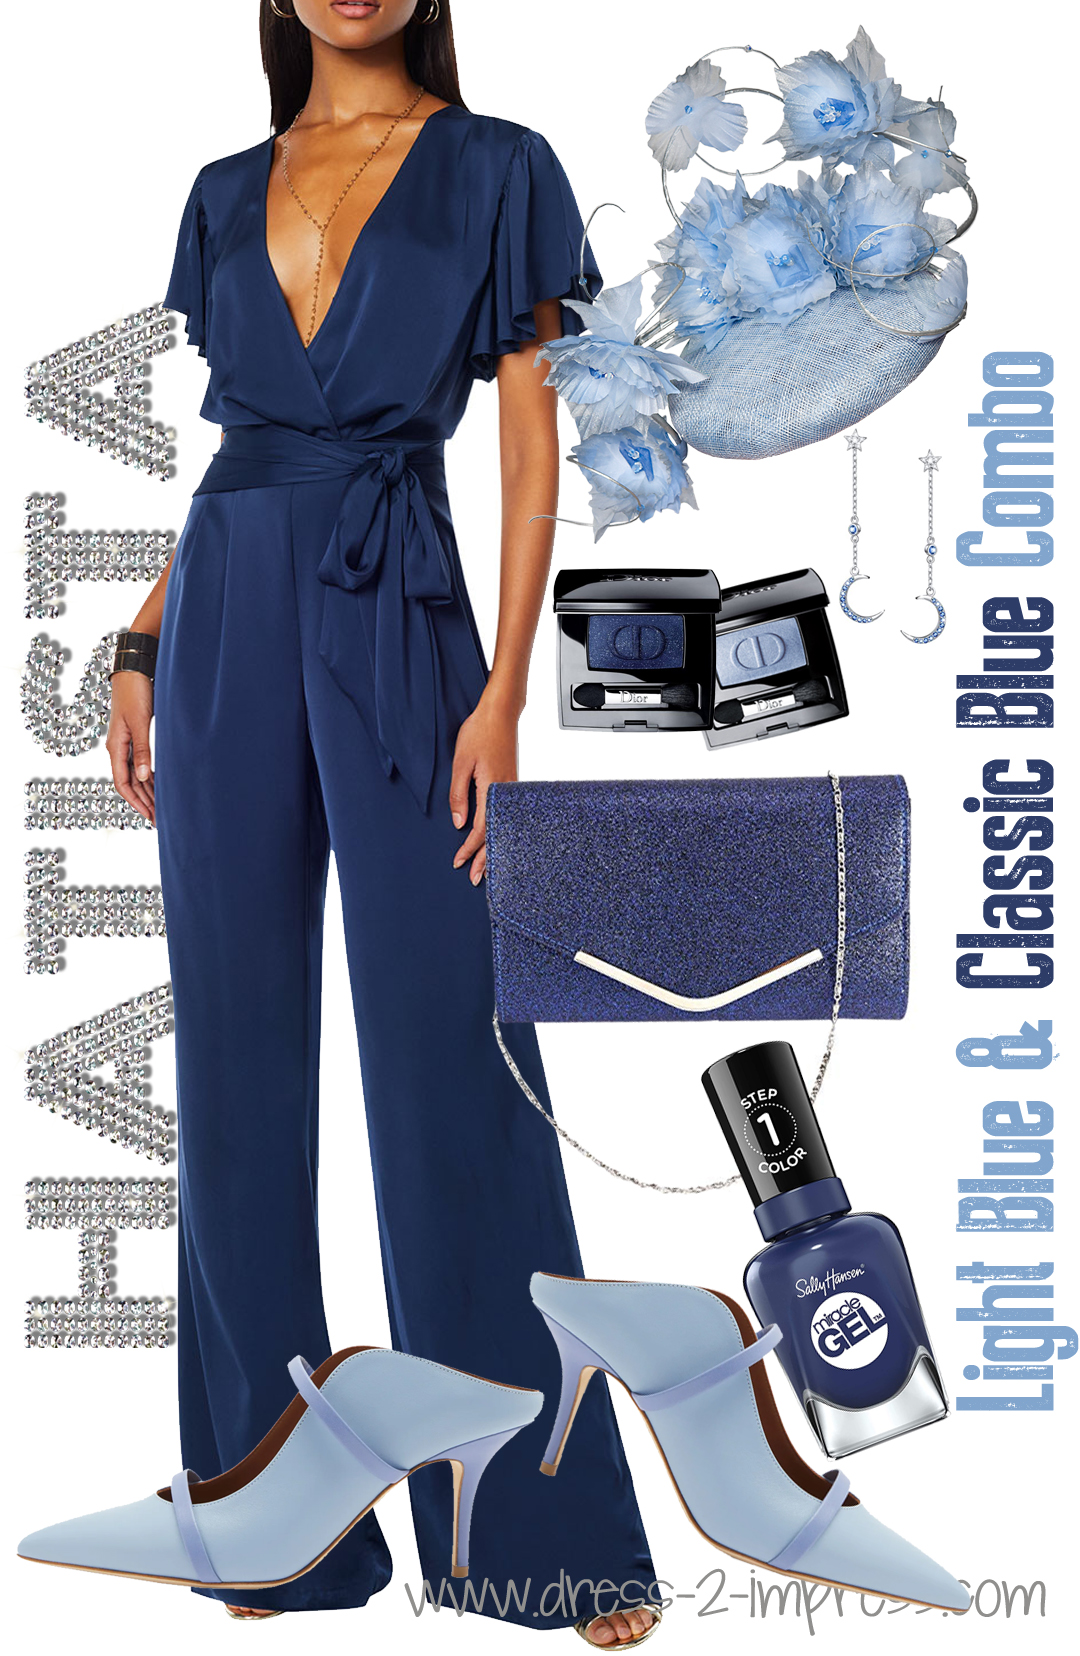 Outfits in Pantone Classic Blue 2020. How to wear Pantone Classic Blue. Pantone Color of the Year 2020 Classic Blue. Classic Blue Wedding Guests outfits. What colors to wear with Classic Blue. Classic Blue and Serenity Blue Colour Combo outfit ideas. What to wear with a blue dress for the races. Royal Ascot outfit ideas 2020.